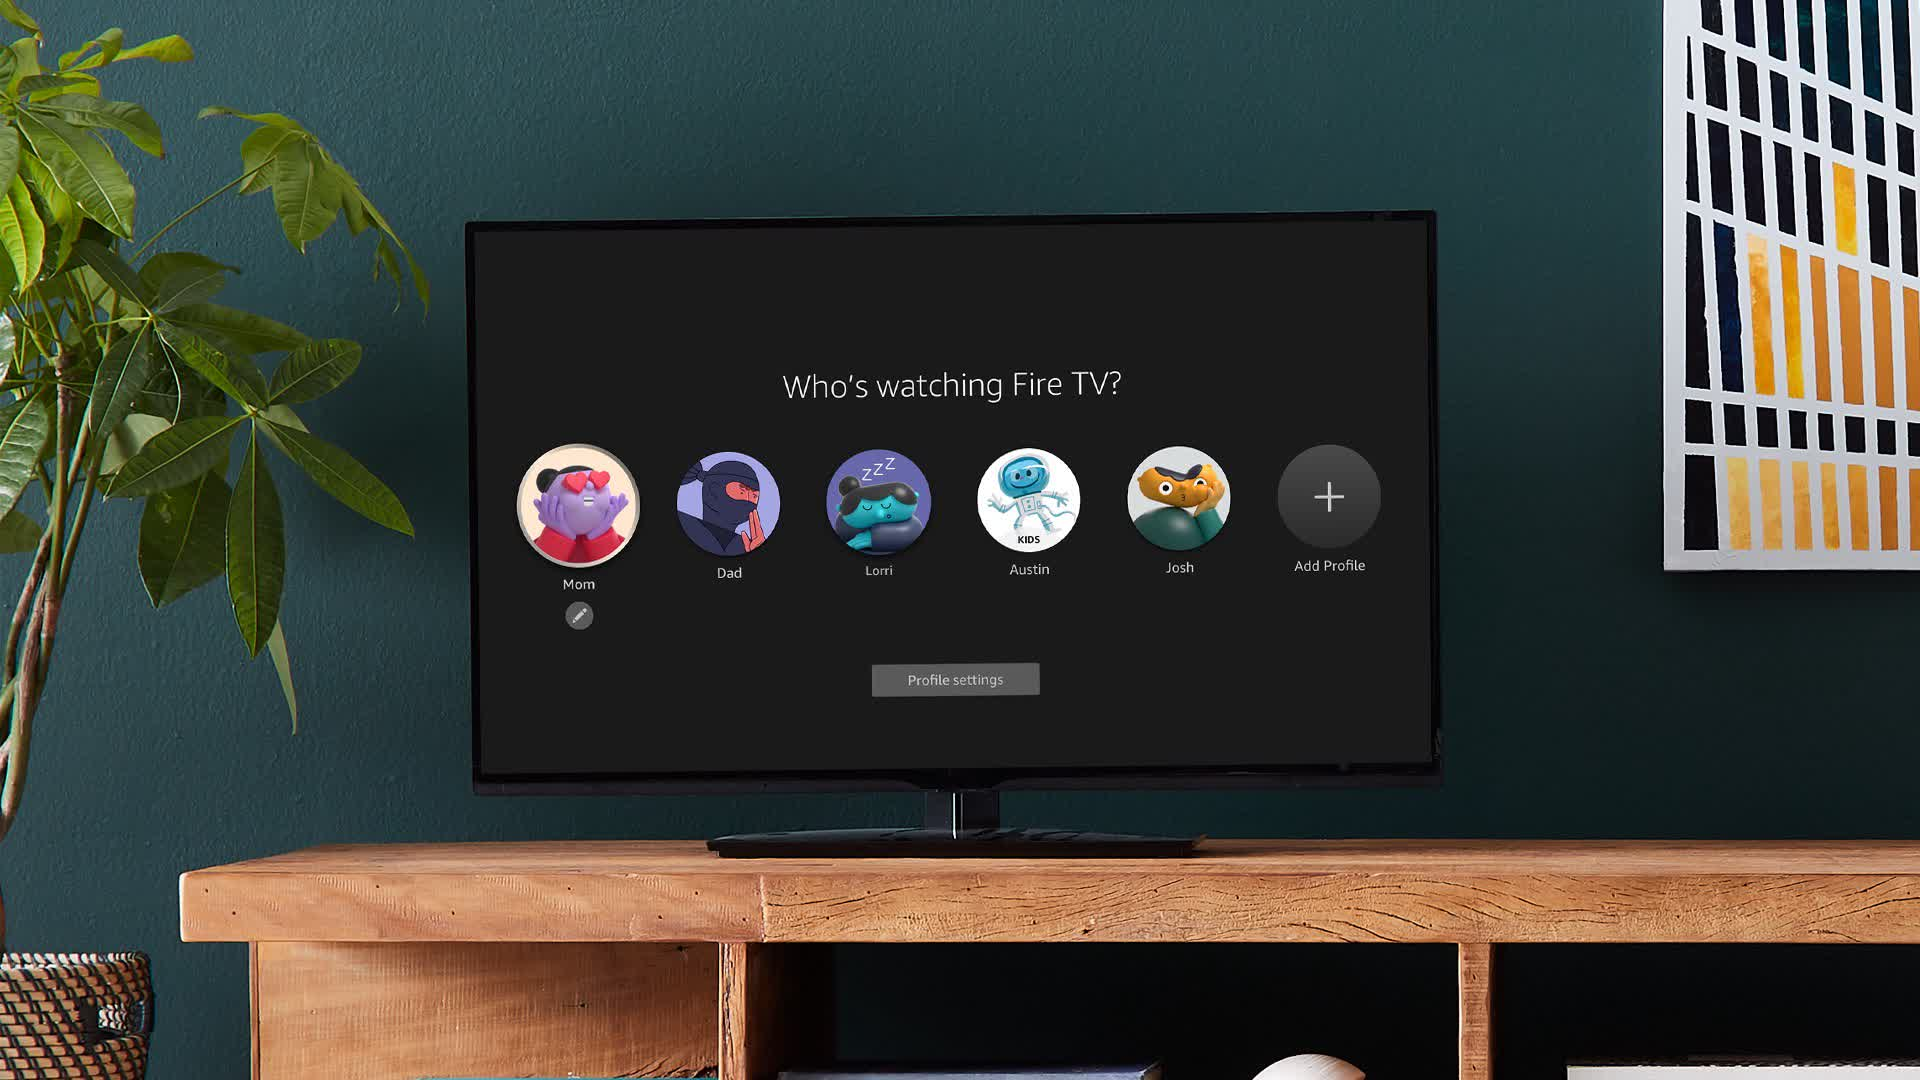 Amazon Fire TV gets a redesigned UI and new features